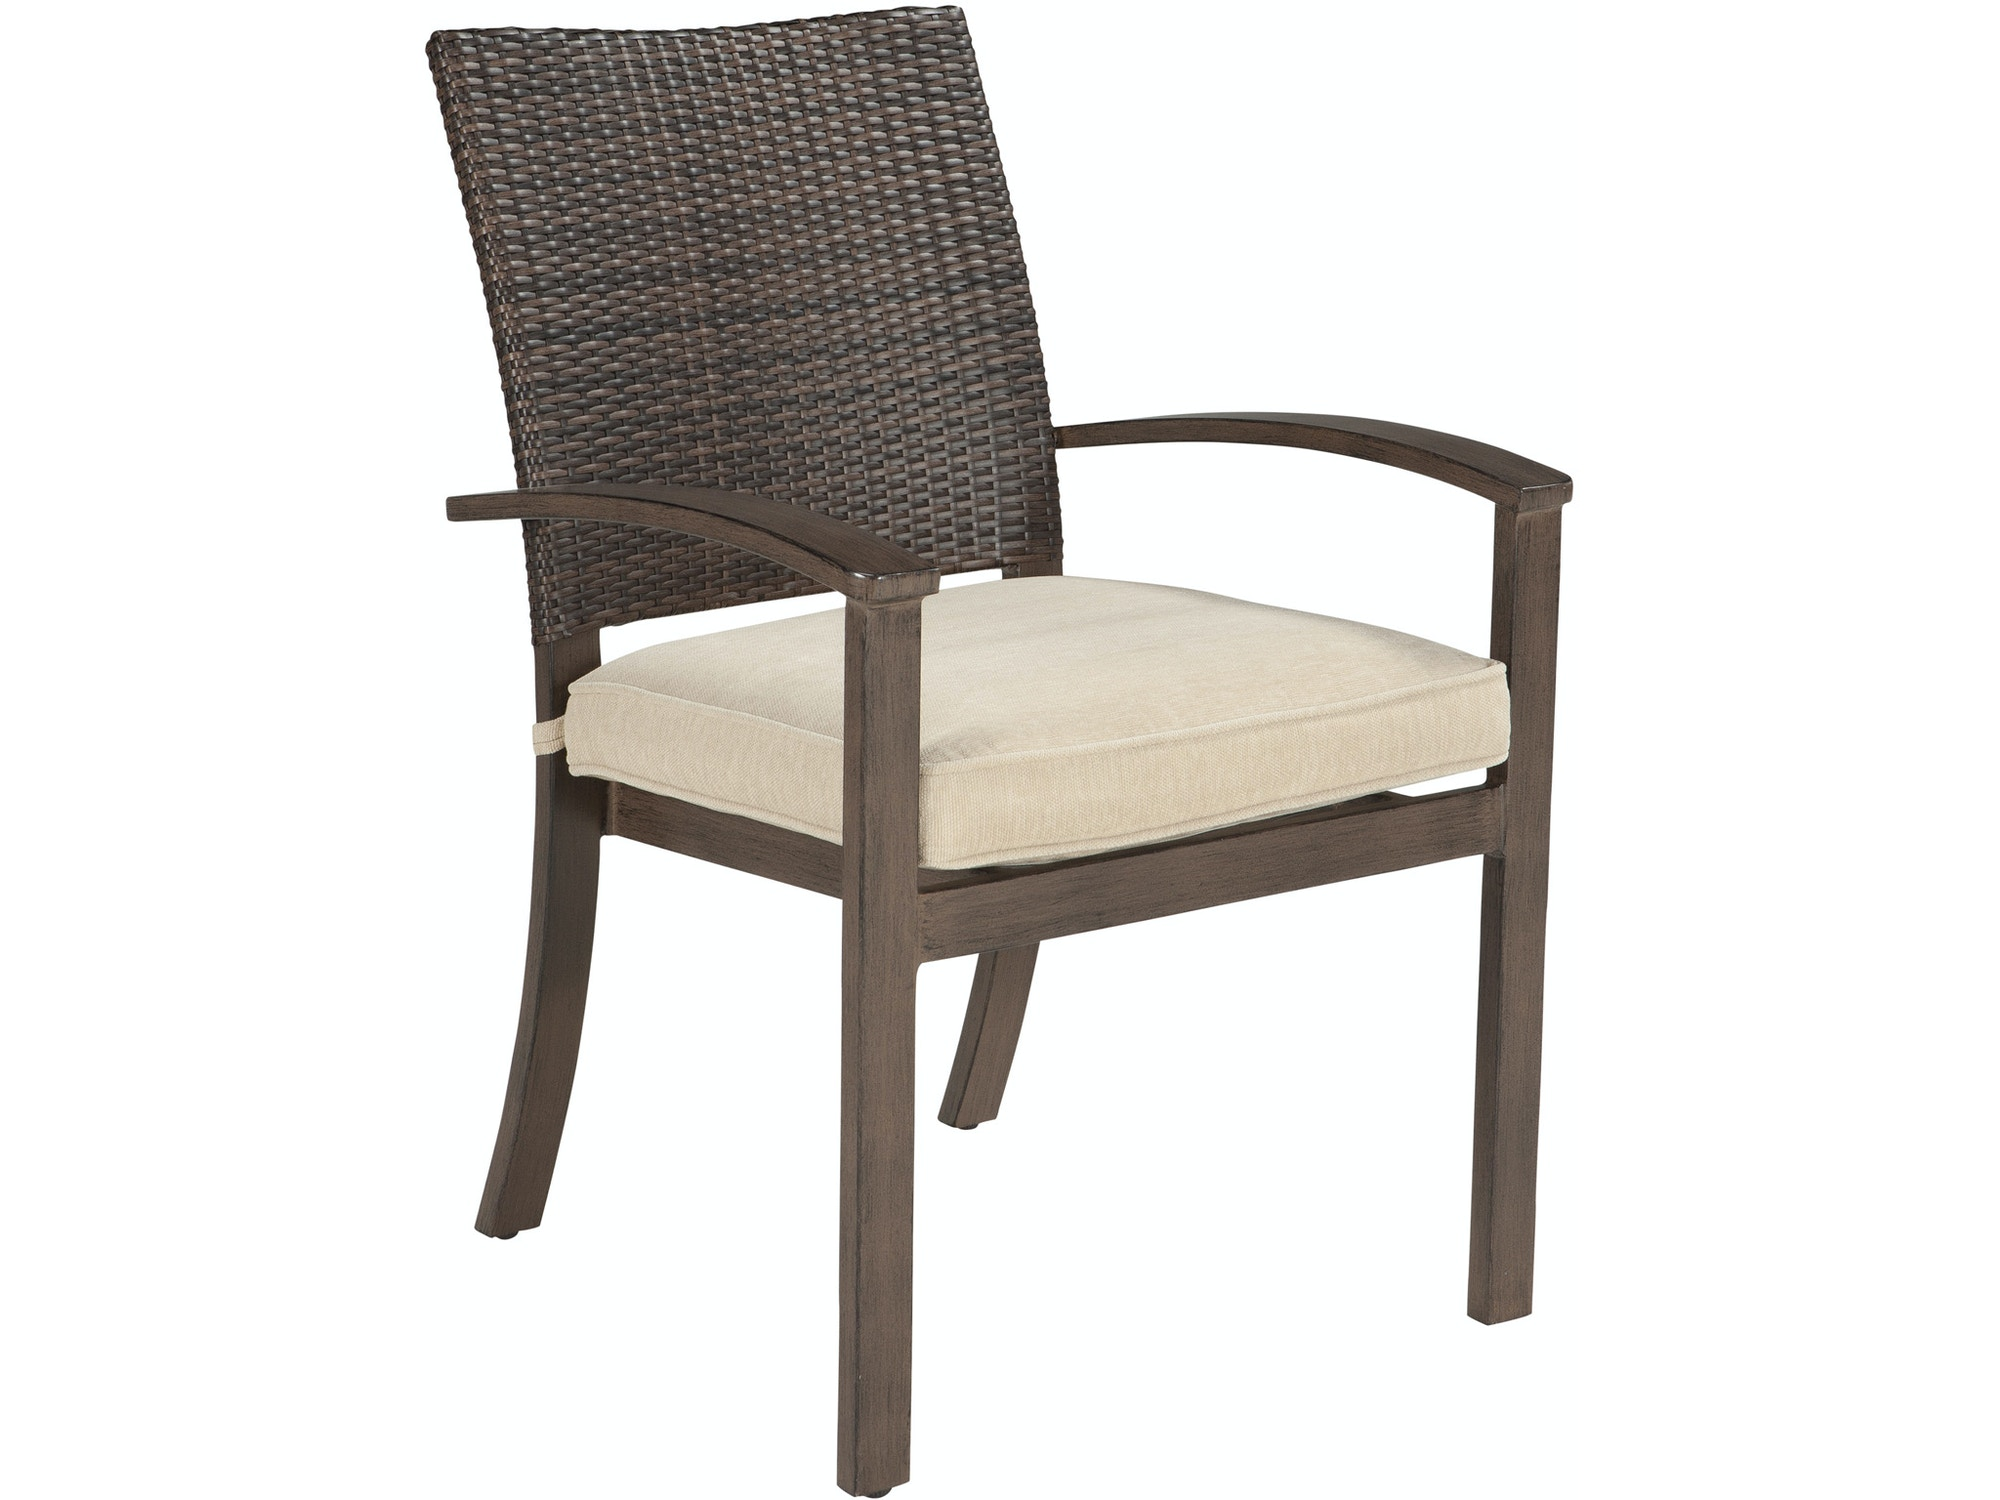 Moresdale Arm Chair with Cushion 054298